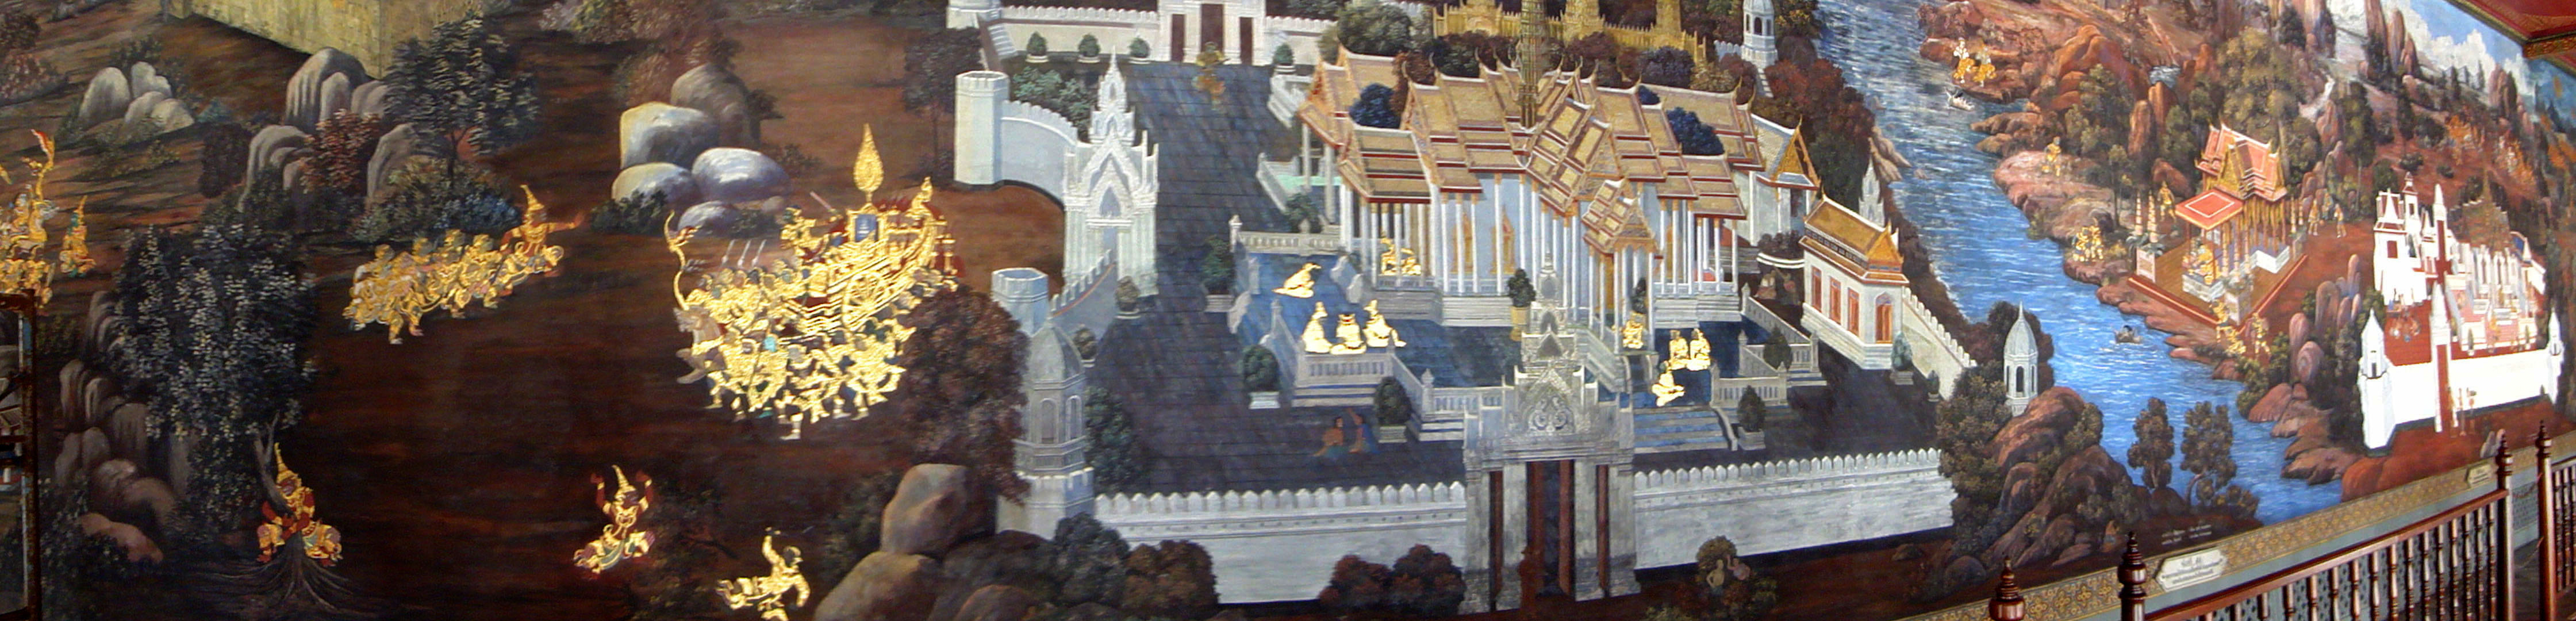 Grand Palace Gold leaf Buddhist artwork Bangkok Thailand 46